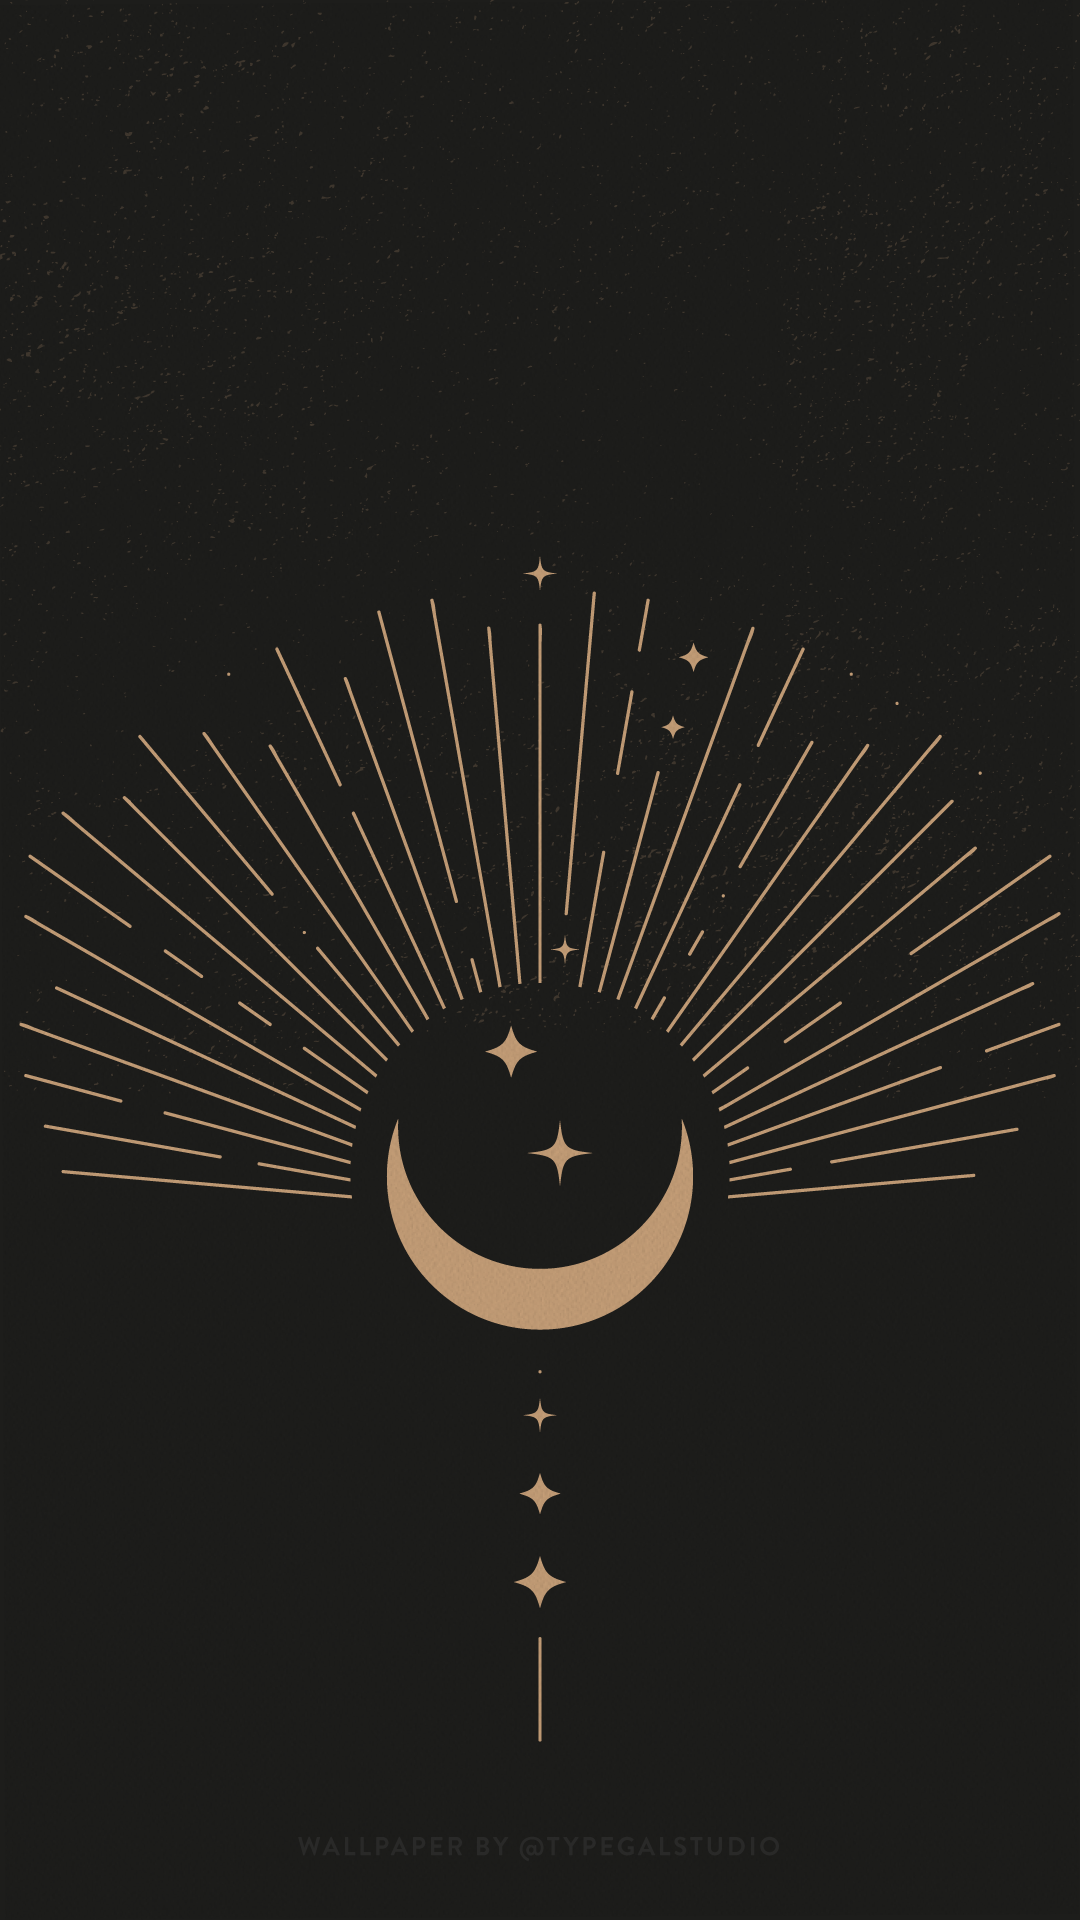 Celestial Phone Wallpaper By Typegal Com Moon Stars Art Phone Wallpaper Wallpaper